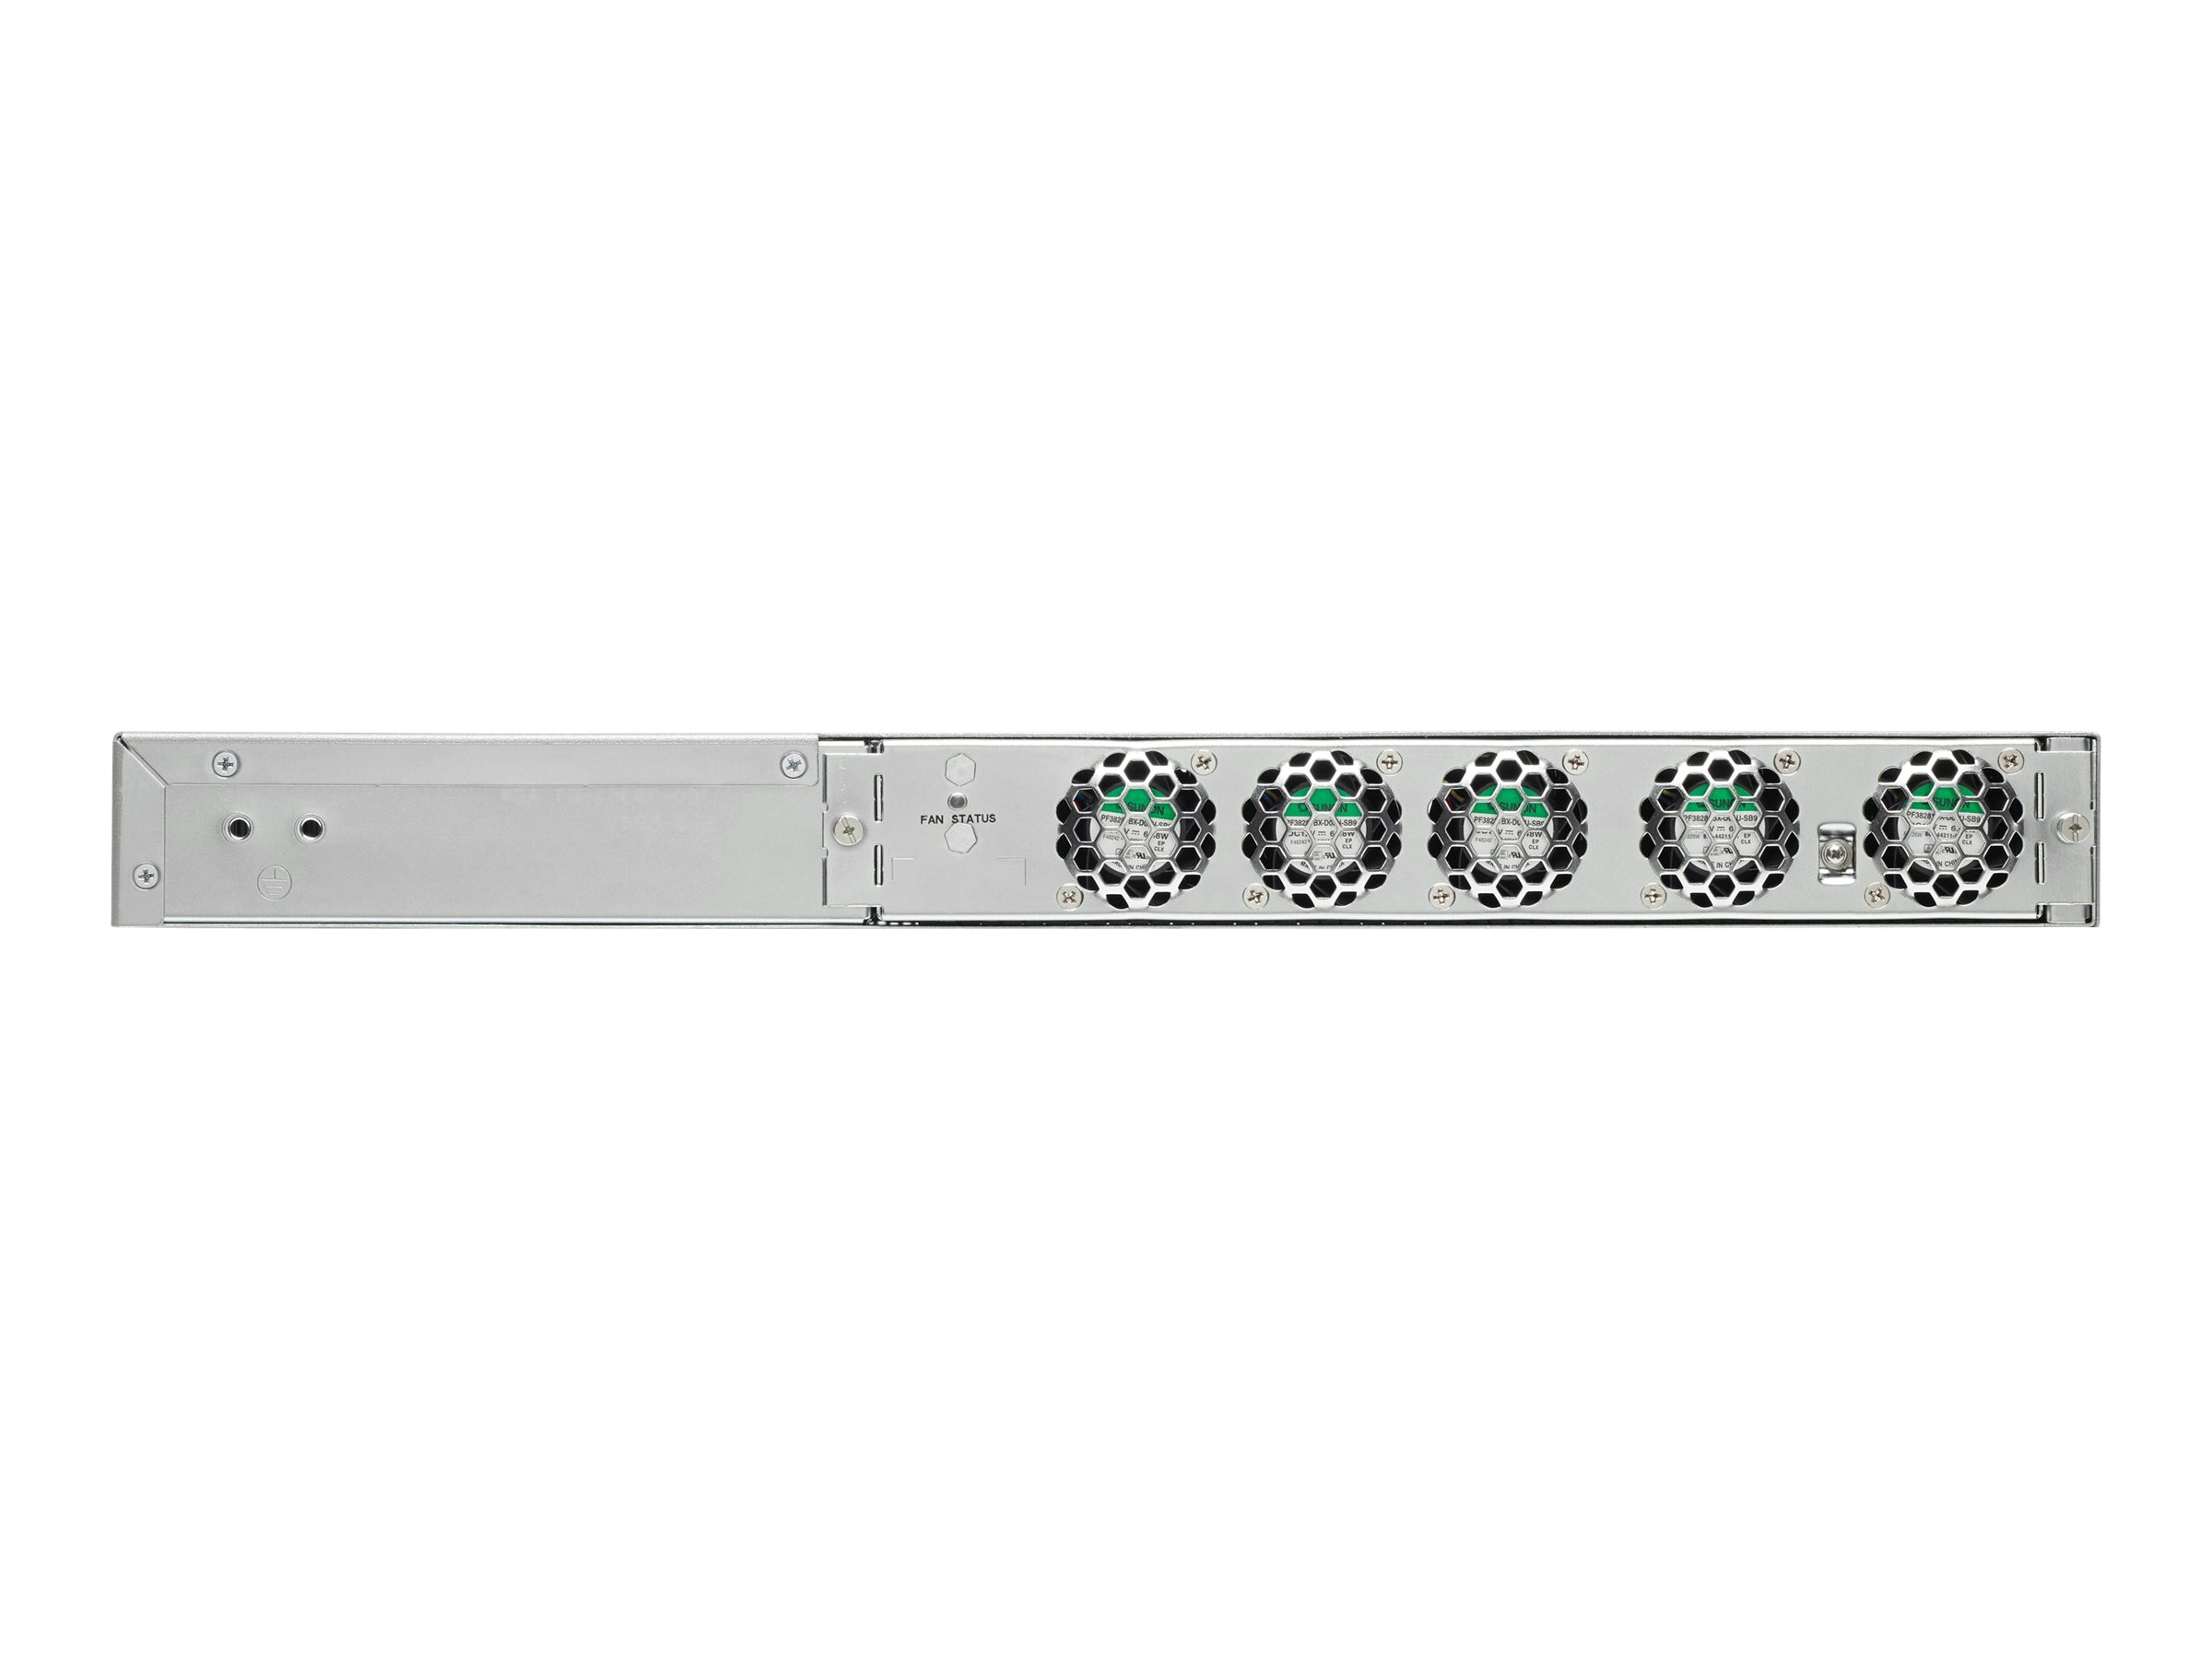 Cisco ASR-920-24TZ-M Image 2